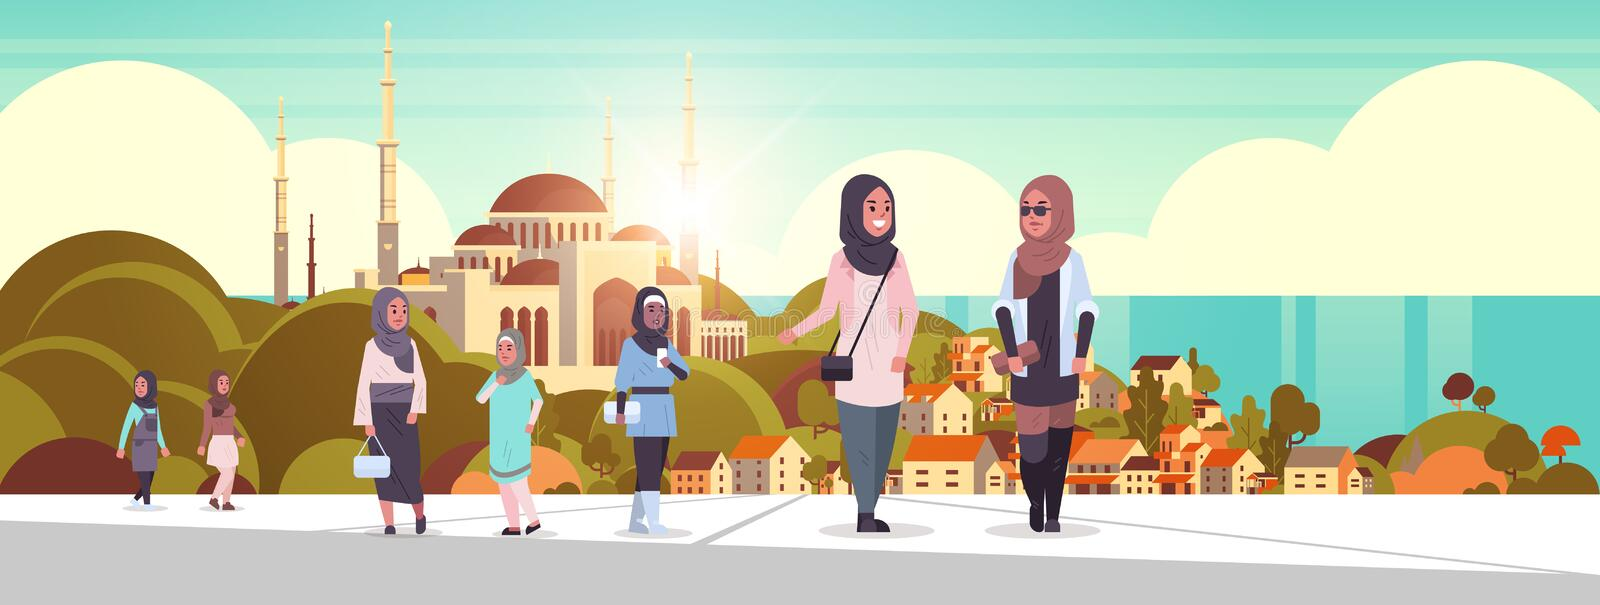 Arabic people walking outdoor arab women wearing traditional clothes arabian cartoon characters over nabawi mosque stock illustration